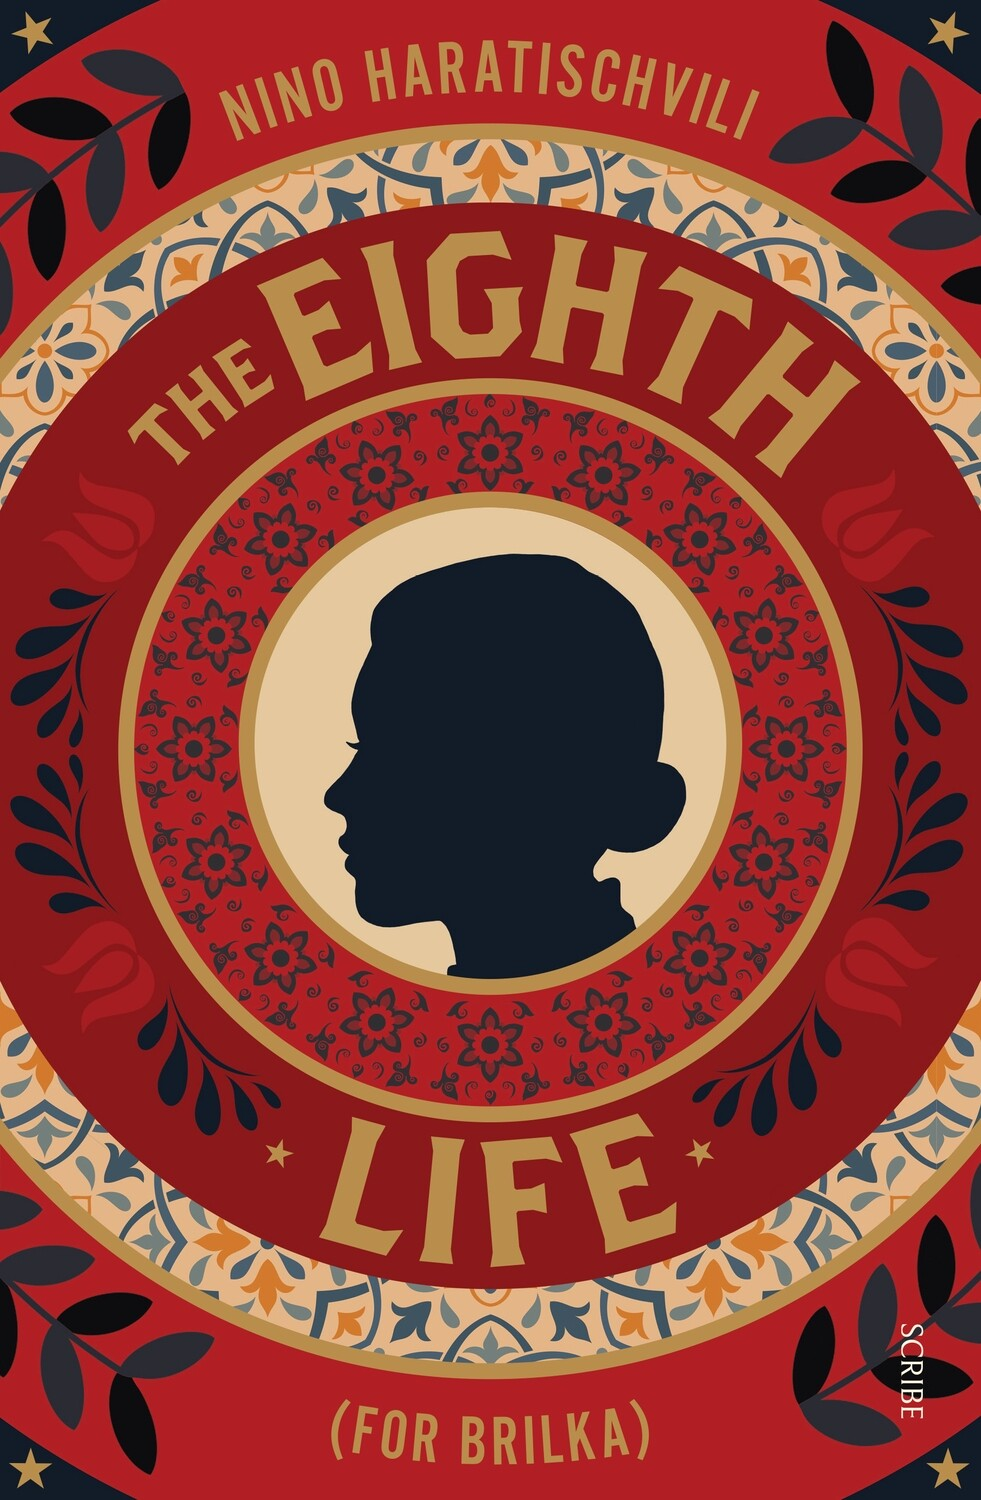 The Eighth Life (for Brilka) by Nino Haratischvili (trans. Charlotte Collins, Ruth Martin)